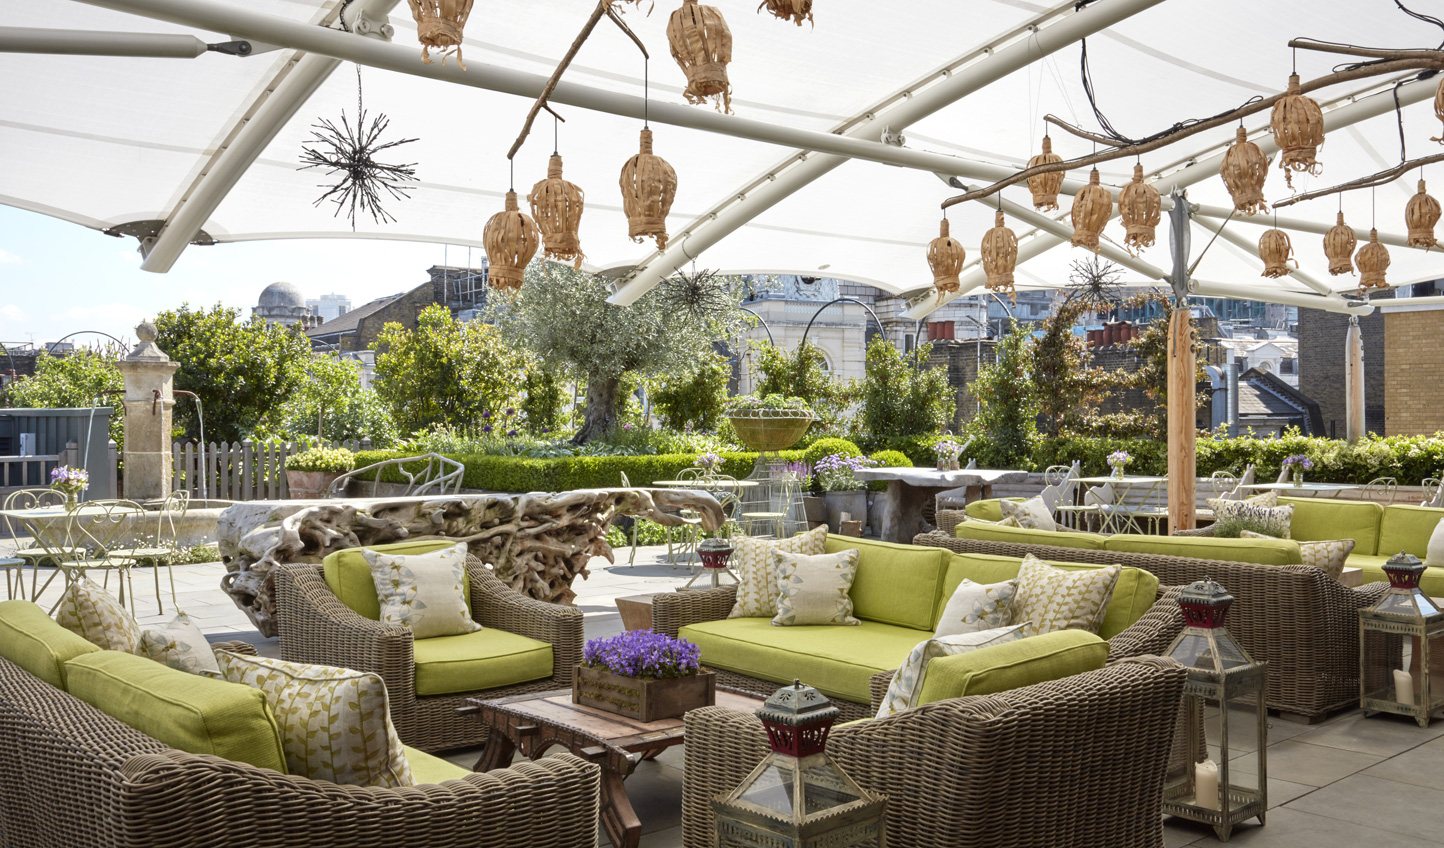 Head up to the roof terrace bar for amazing views over London